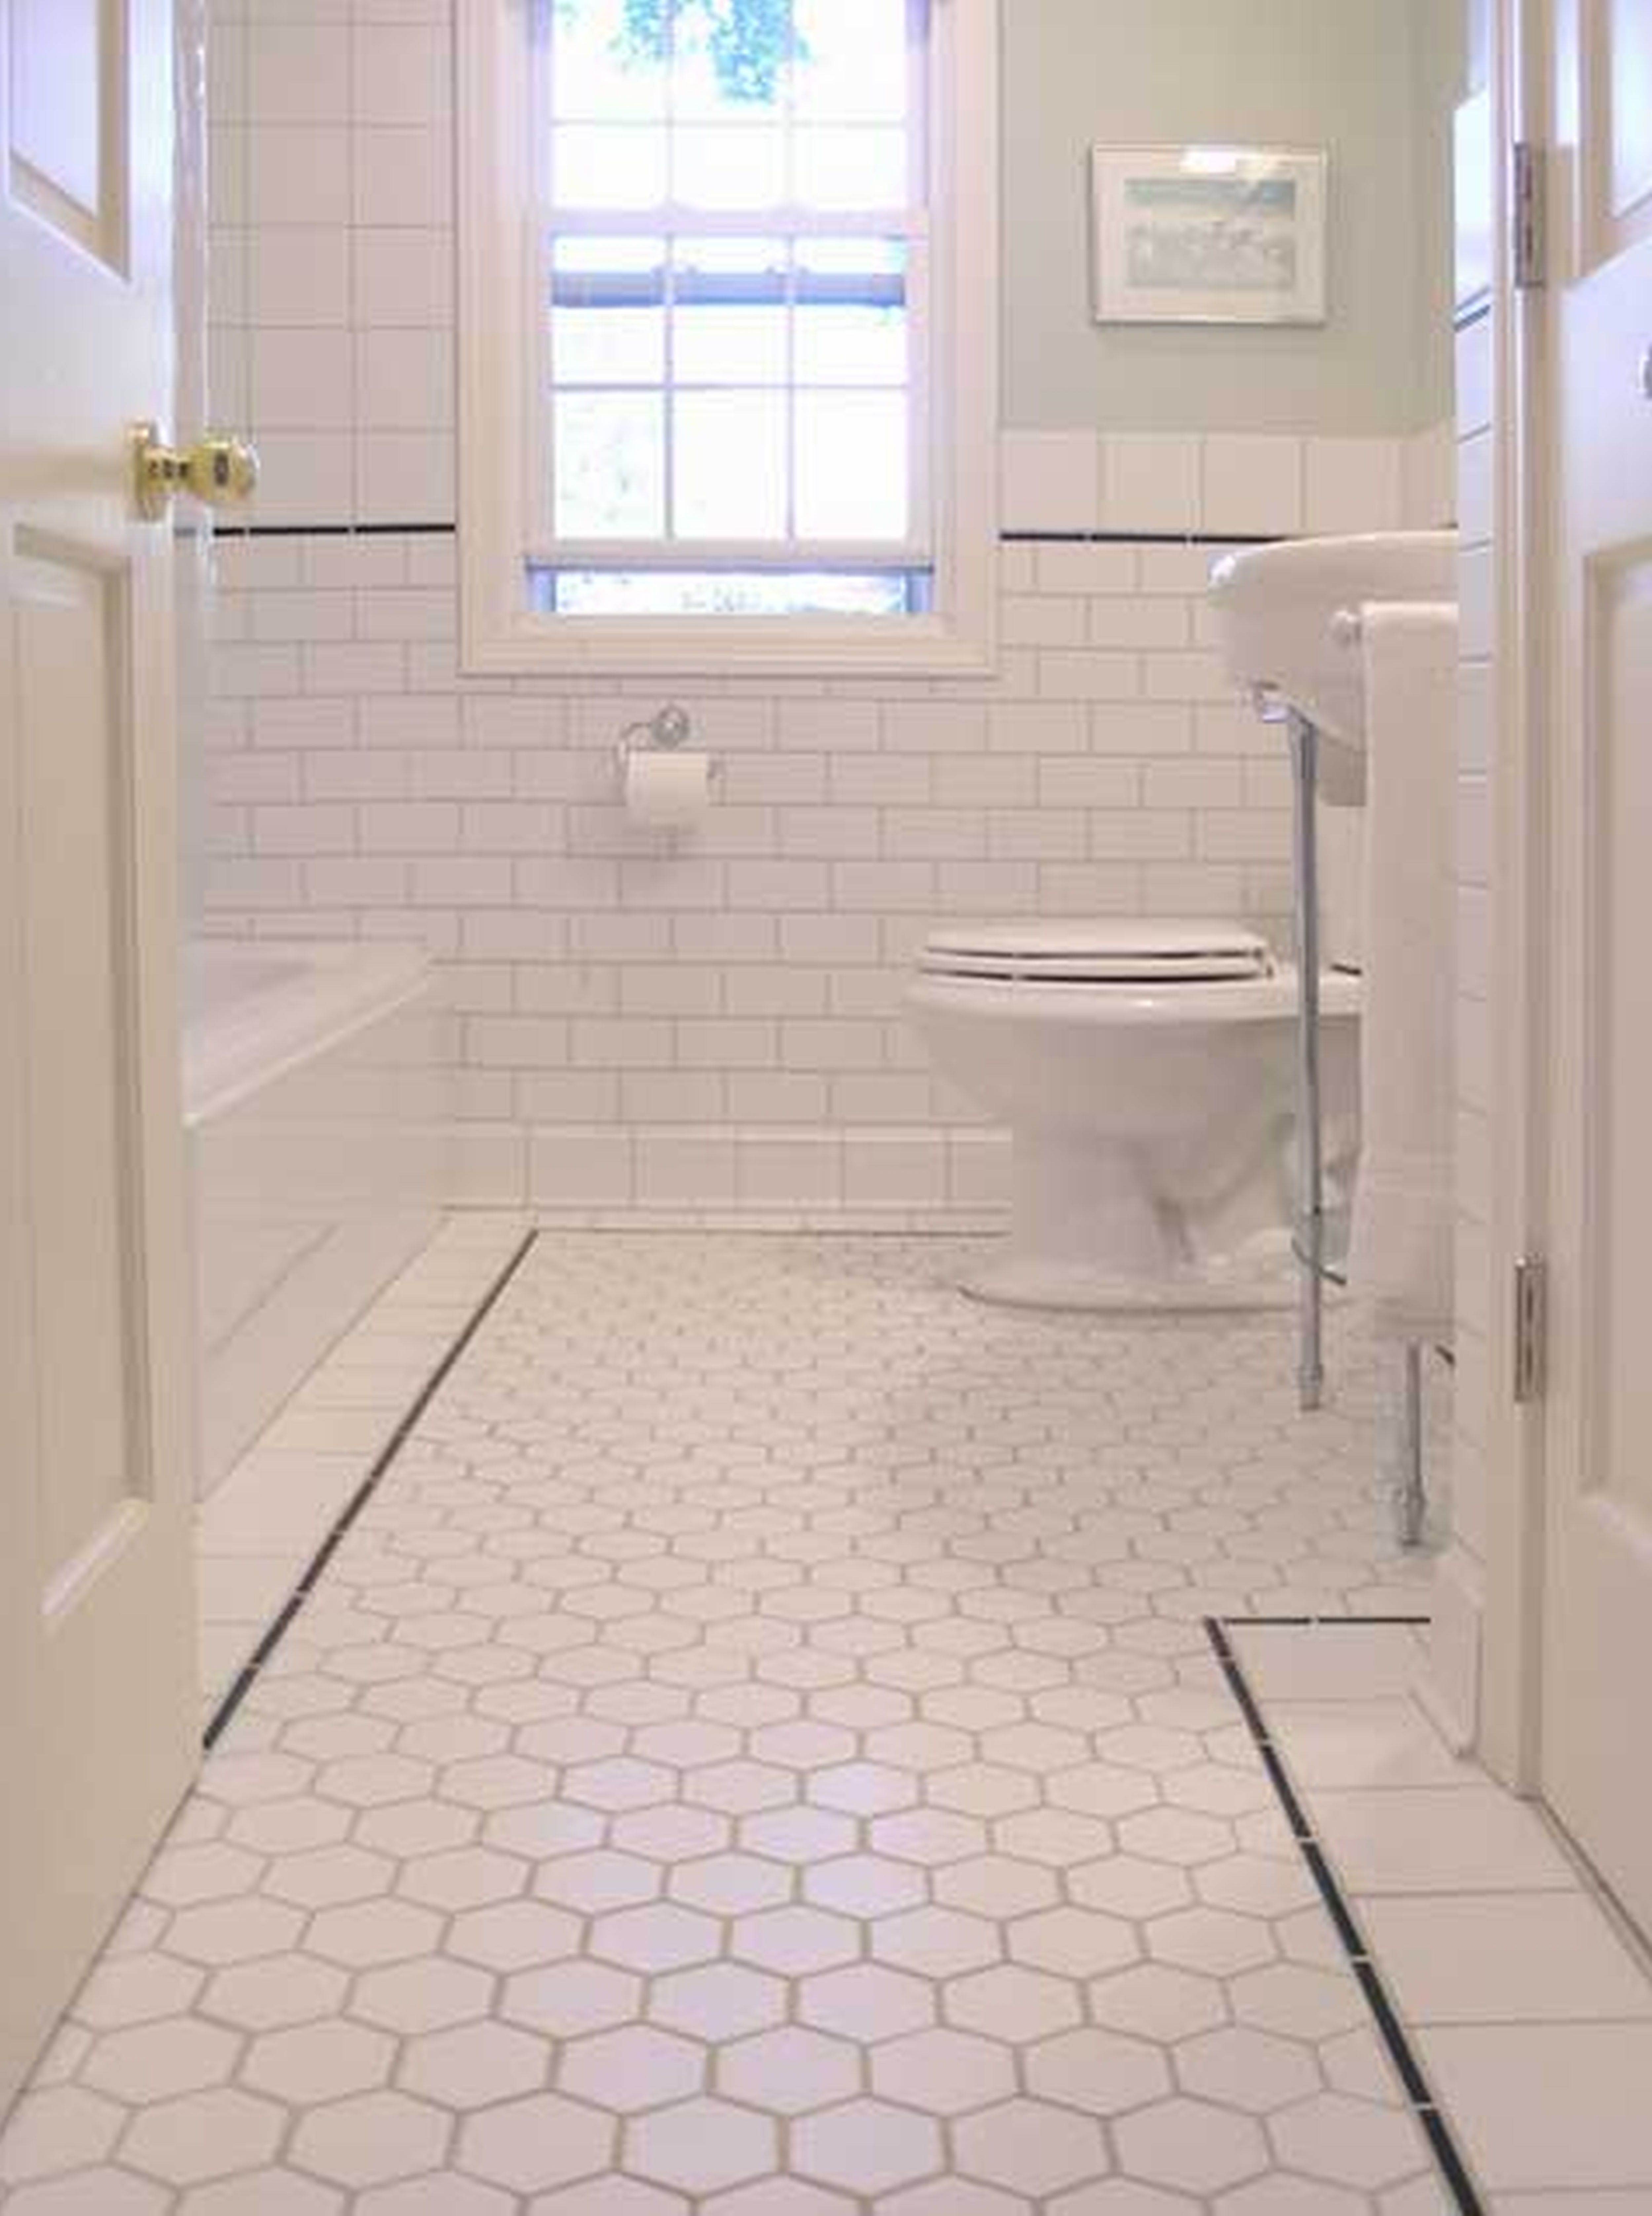 36 nice ideas and pictures of vintage bathroom tile design for Bathroom tiles design